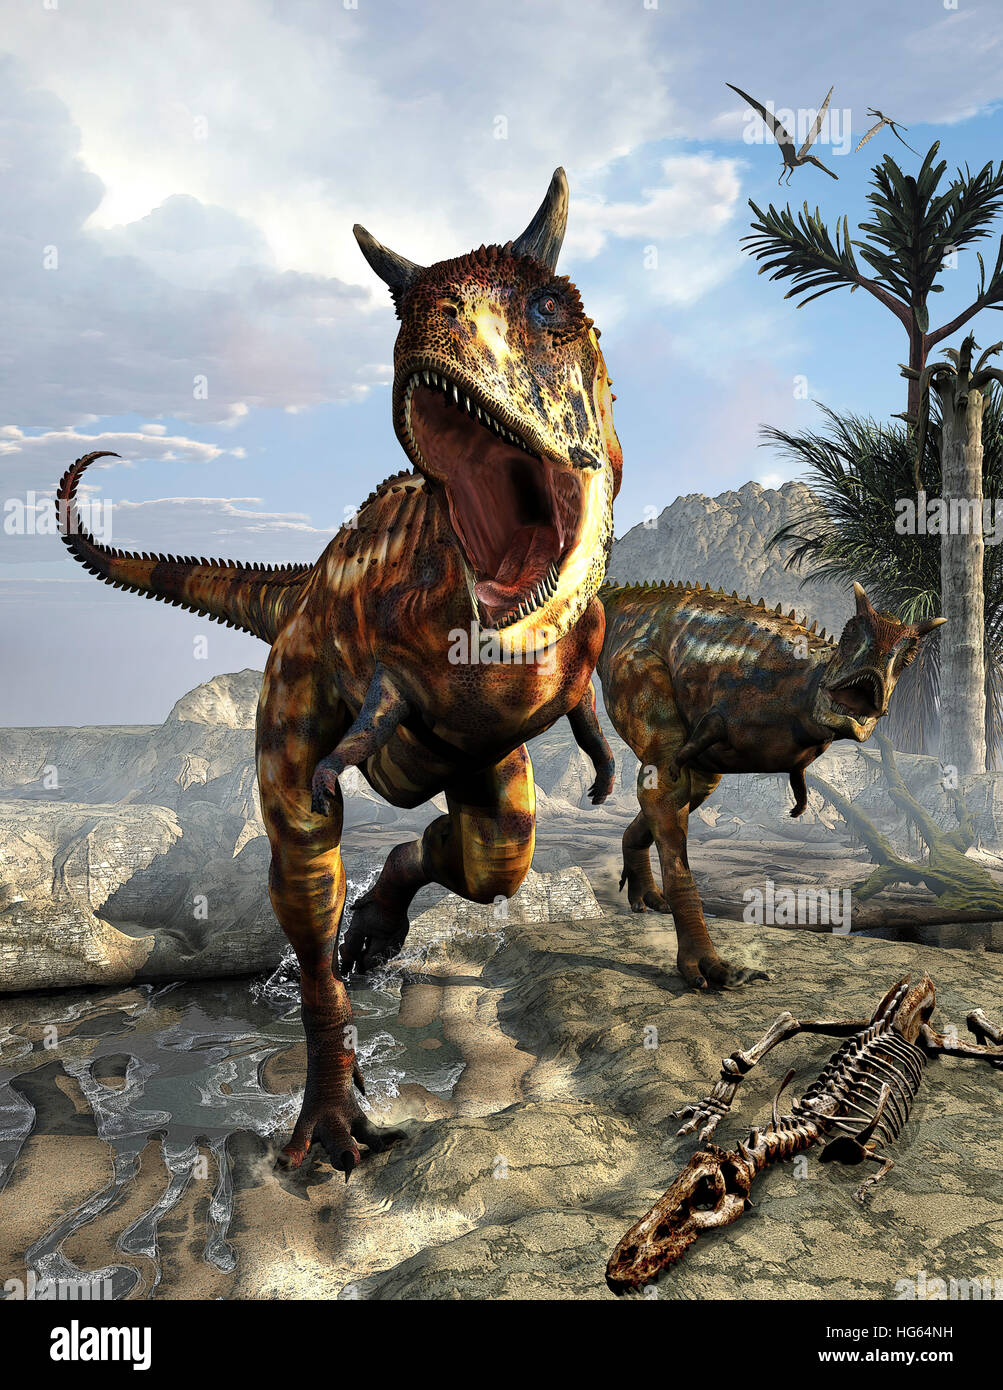 A pair of Carnotaurus dinosaurs hunting for food. - Stock Image